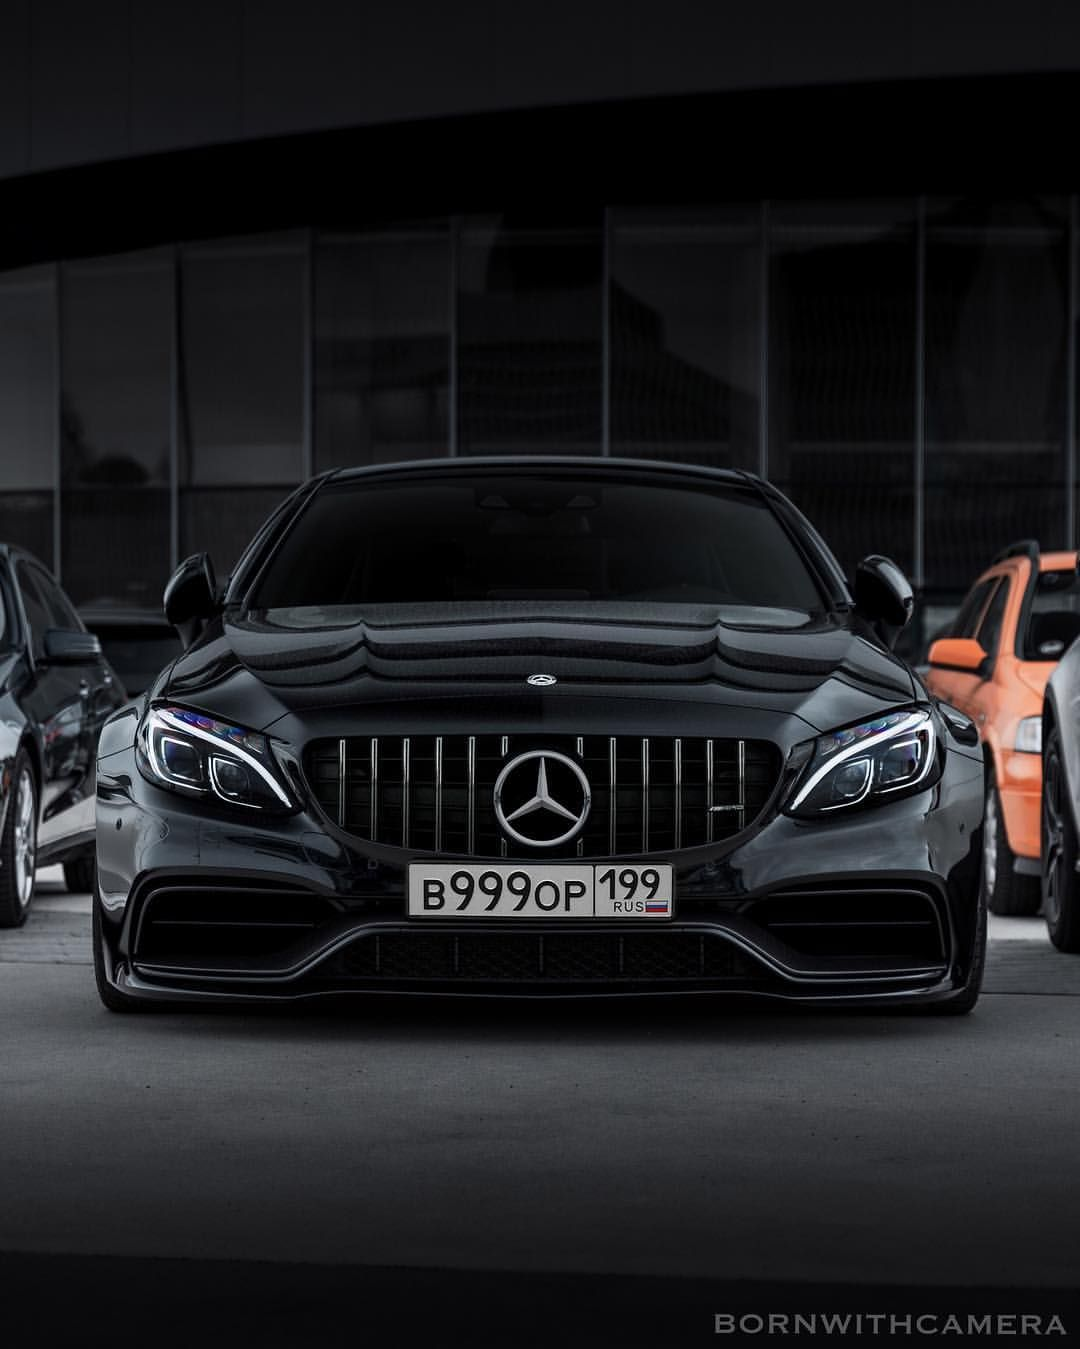 Presenting Brand New 2019 C 63 AMG, Bwc Signature. Your